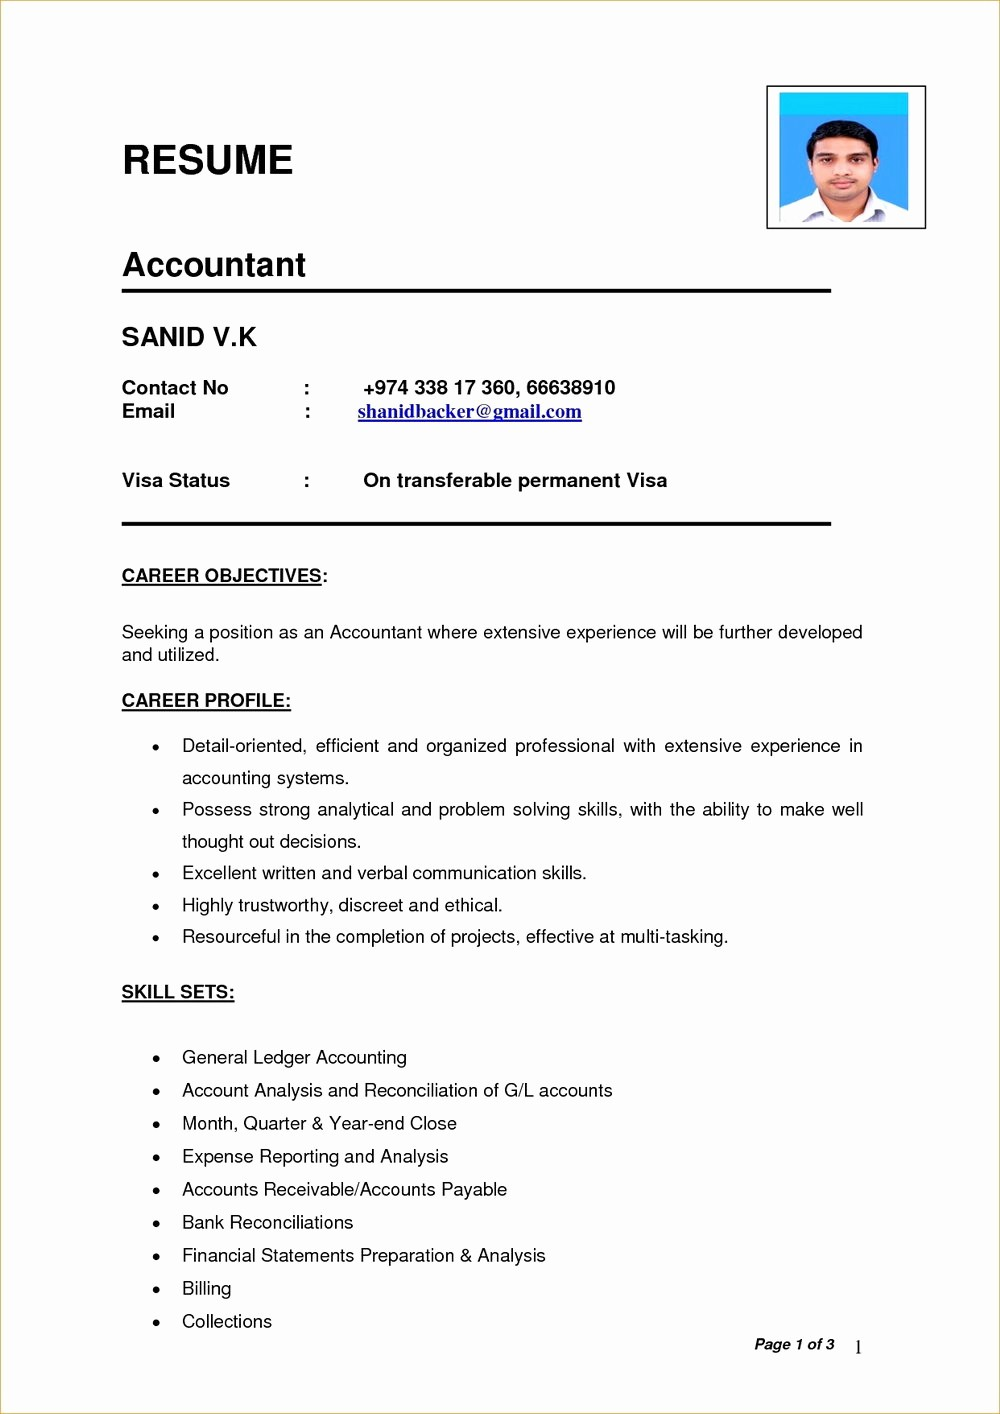 Best Resume Template Microsoft Word Unique Simple Resume Templates for Word Resumes 201